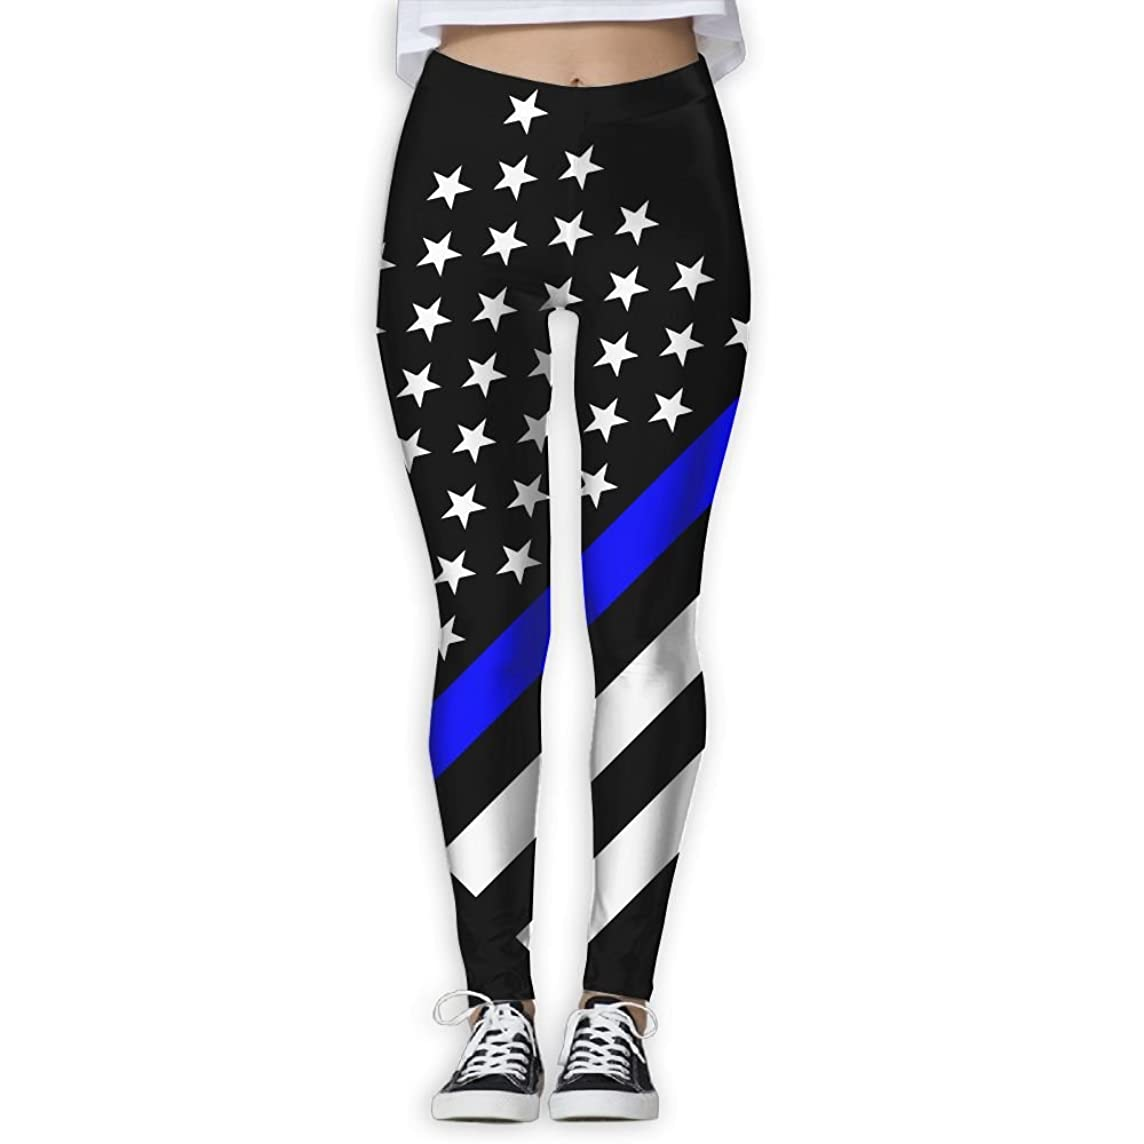 Blue Thin Line Us Flag Women's Full-Length Sports Running Yoga Workout Leggings Pants Stretchable M